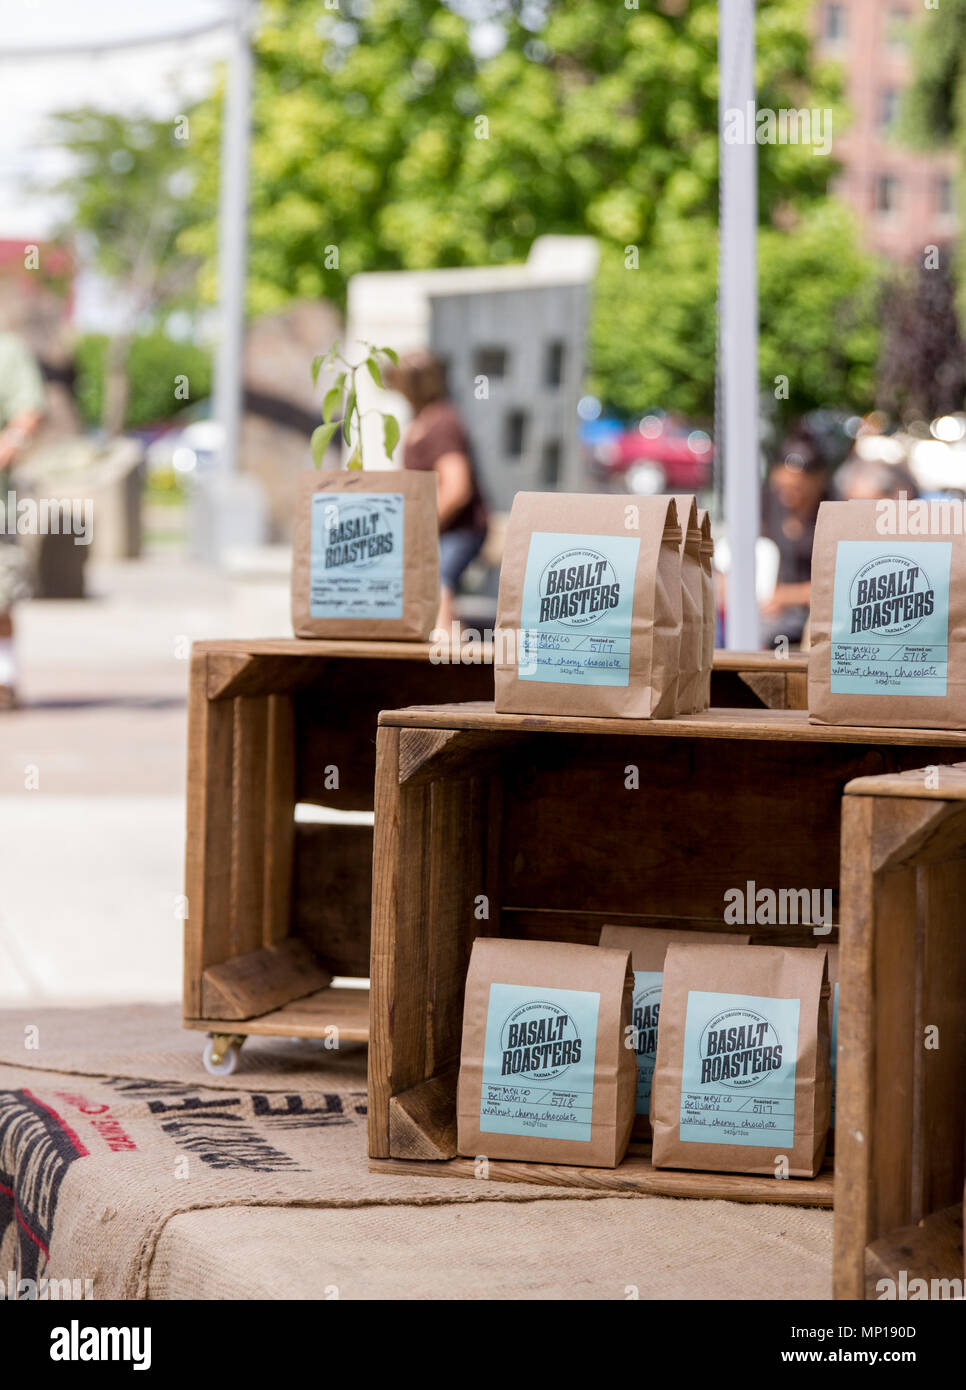 Yakima, Washington / USA - May 21, 2018: Basalt Roasters sell their single origin coffee at the downtown farmer's market on Sunday morning. - Stock Image